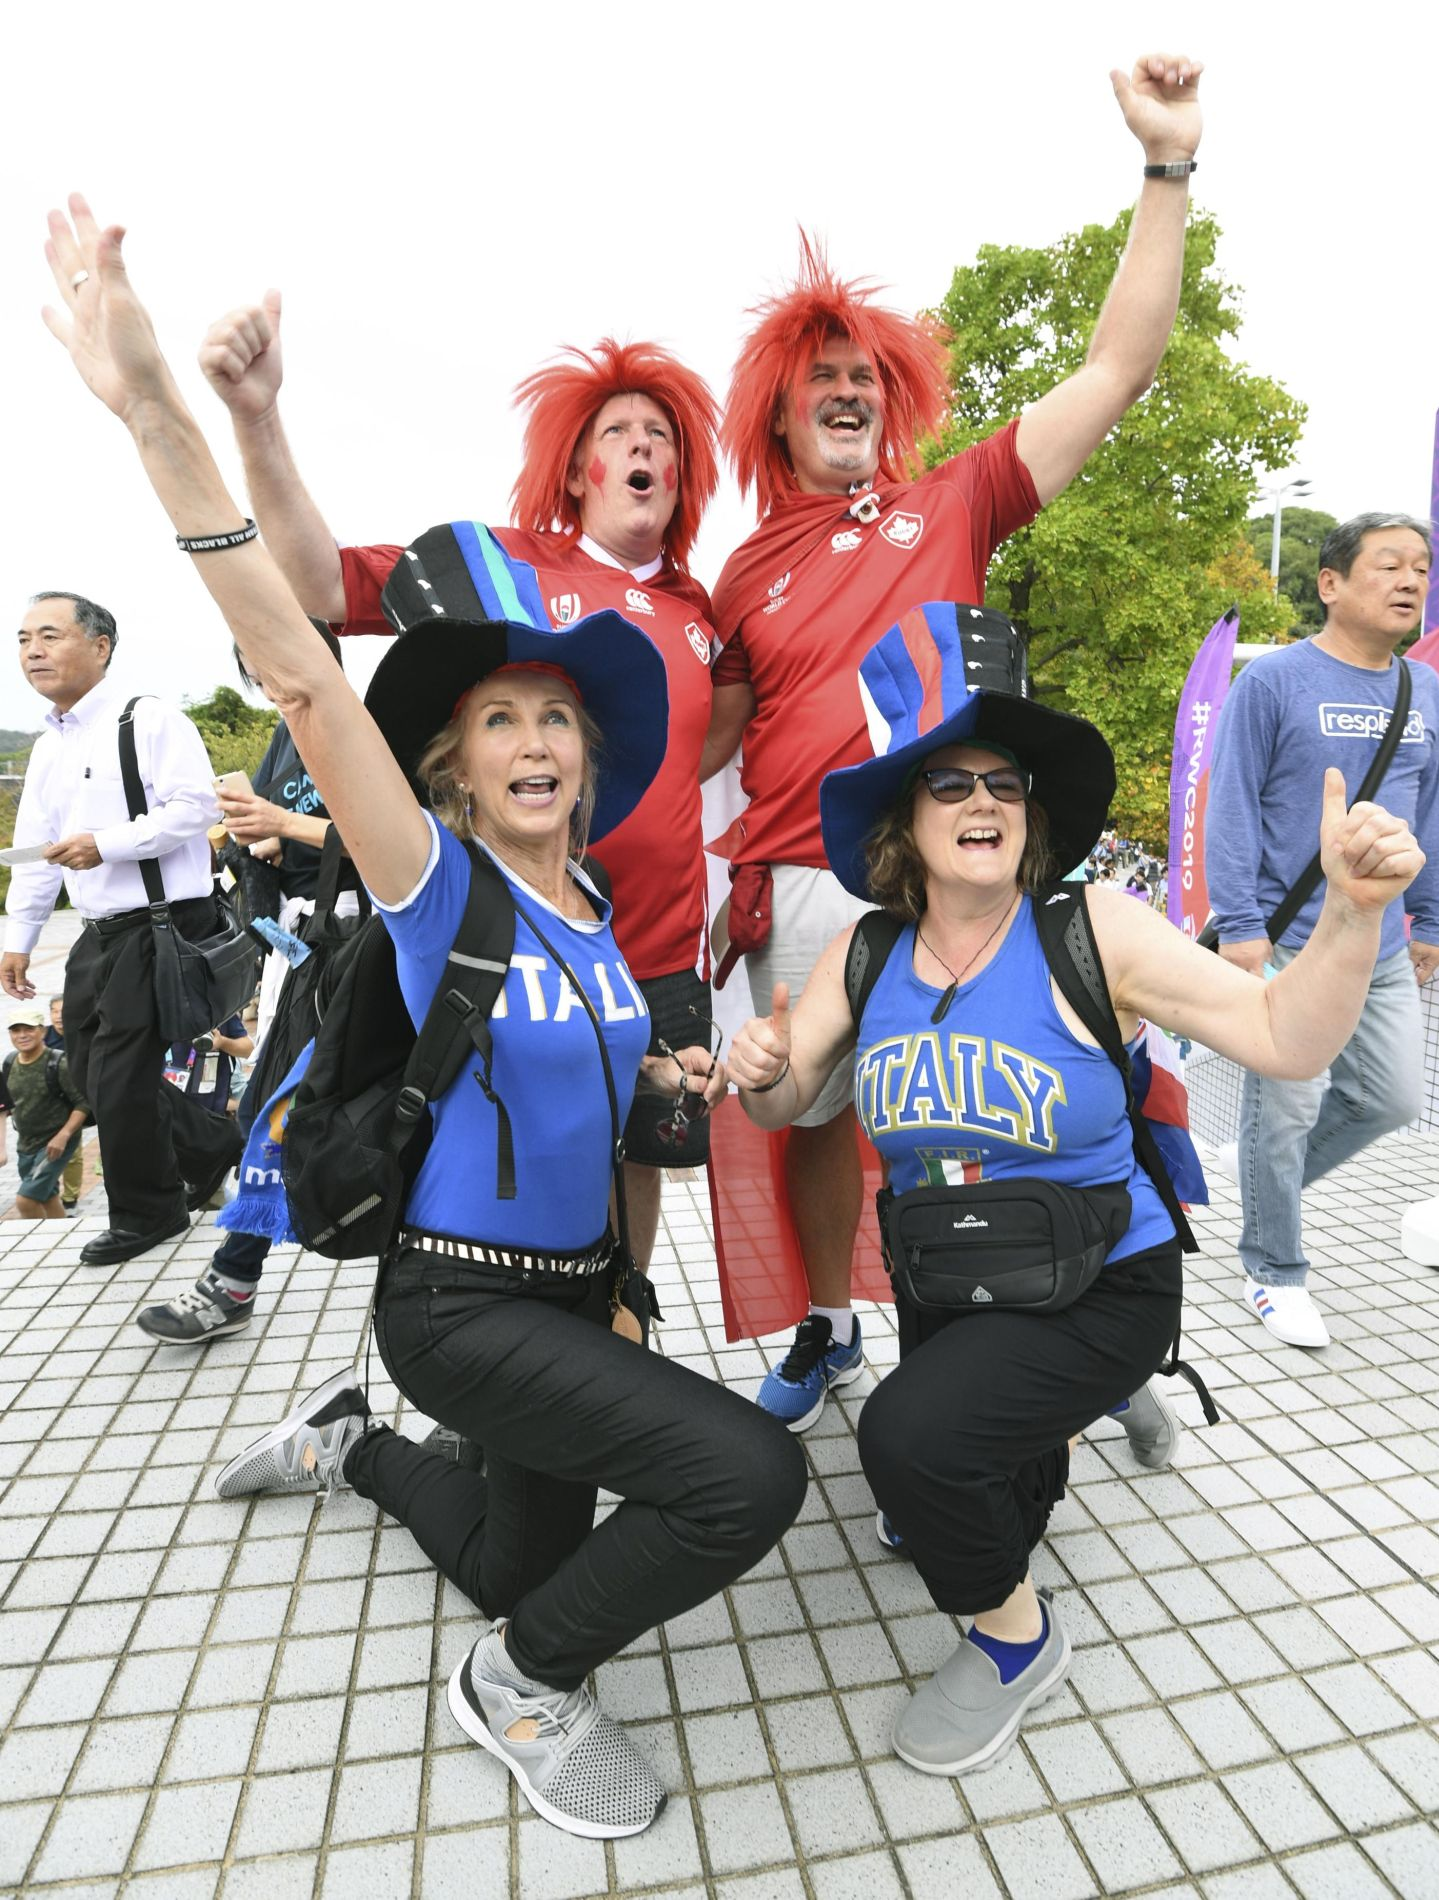 Fans at the Rugby World Cup 2019 in Japan 012